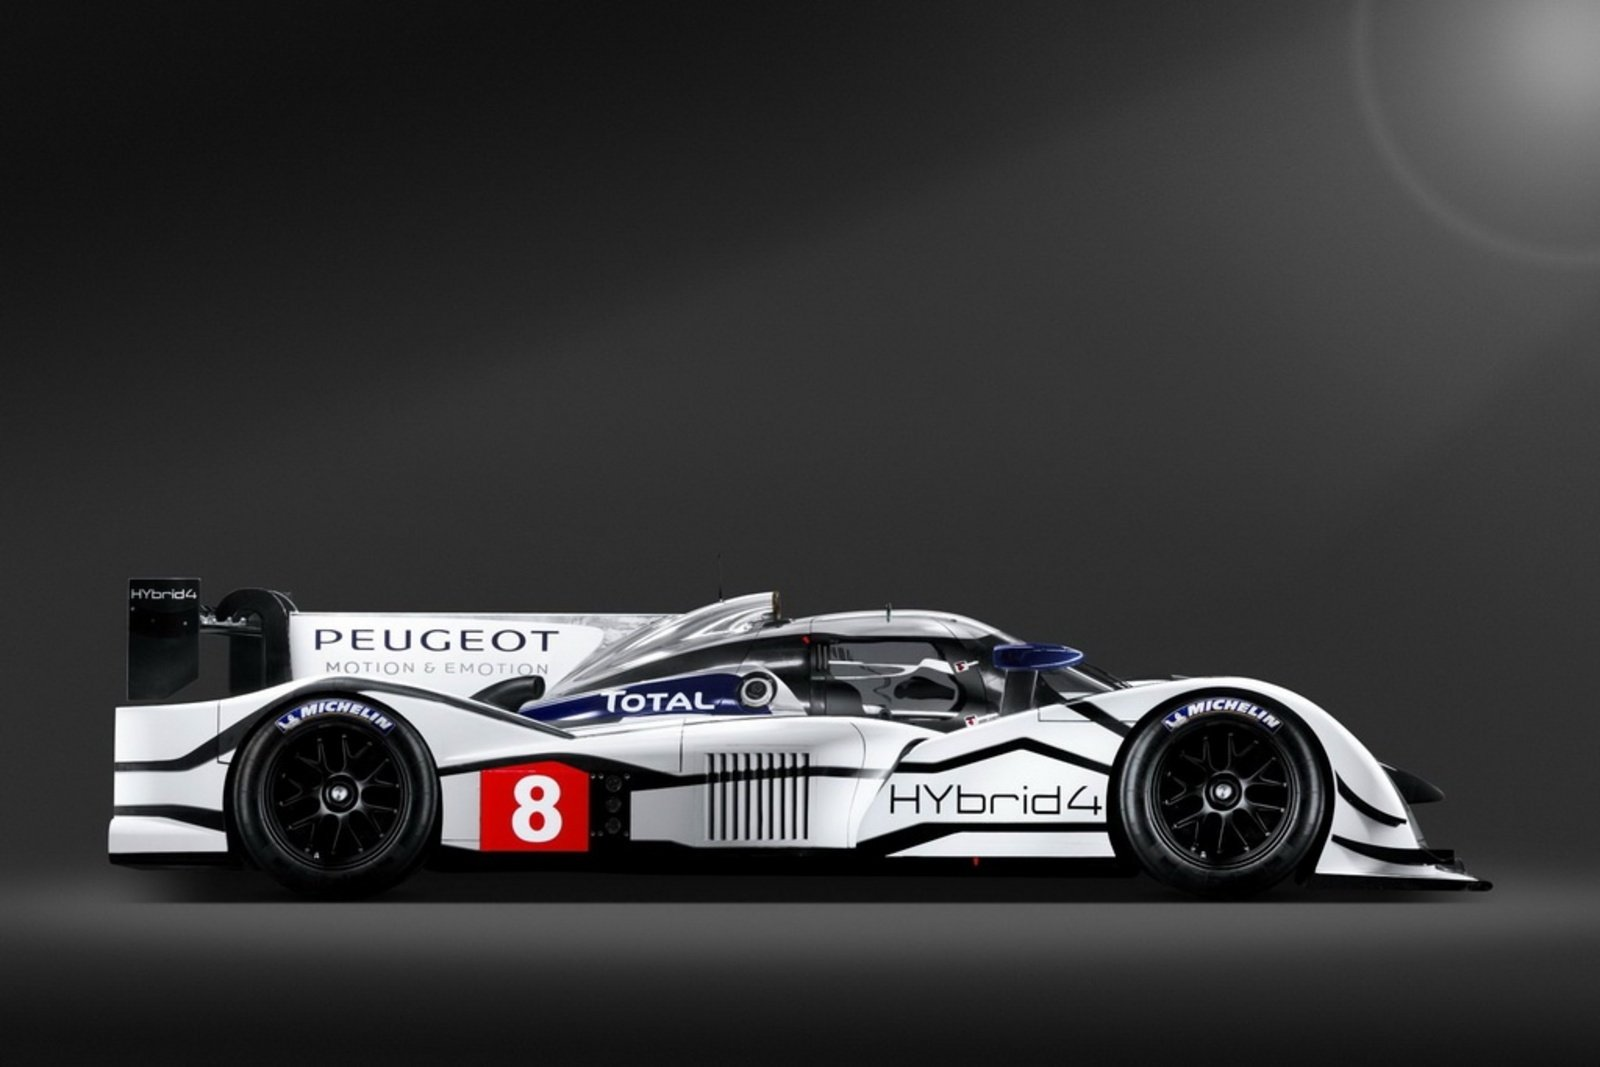 2011 Peugeot 908 Hybrid4 Lmp1 Racecar Review Top Speed